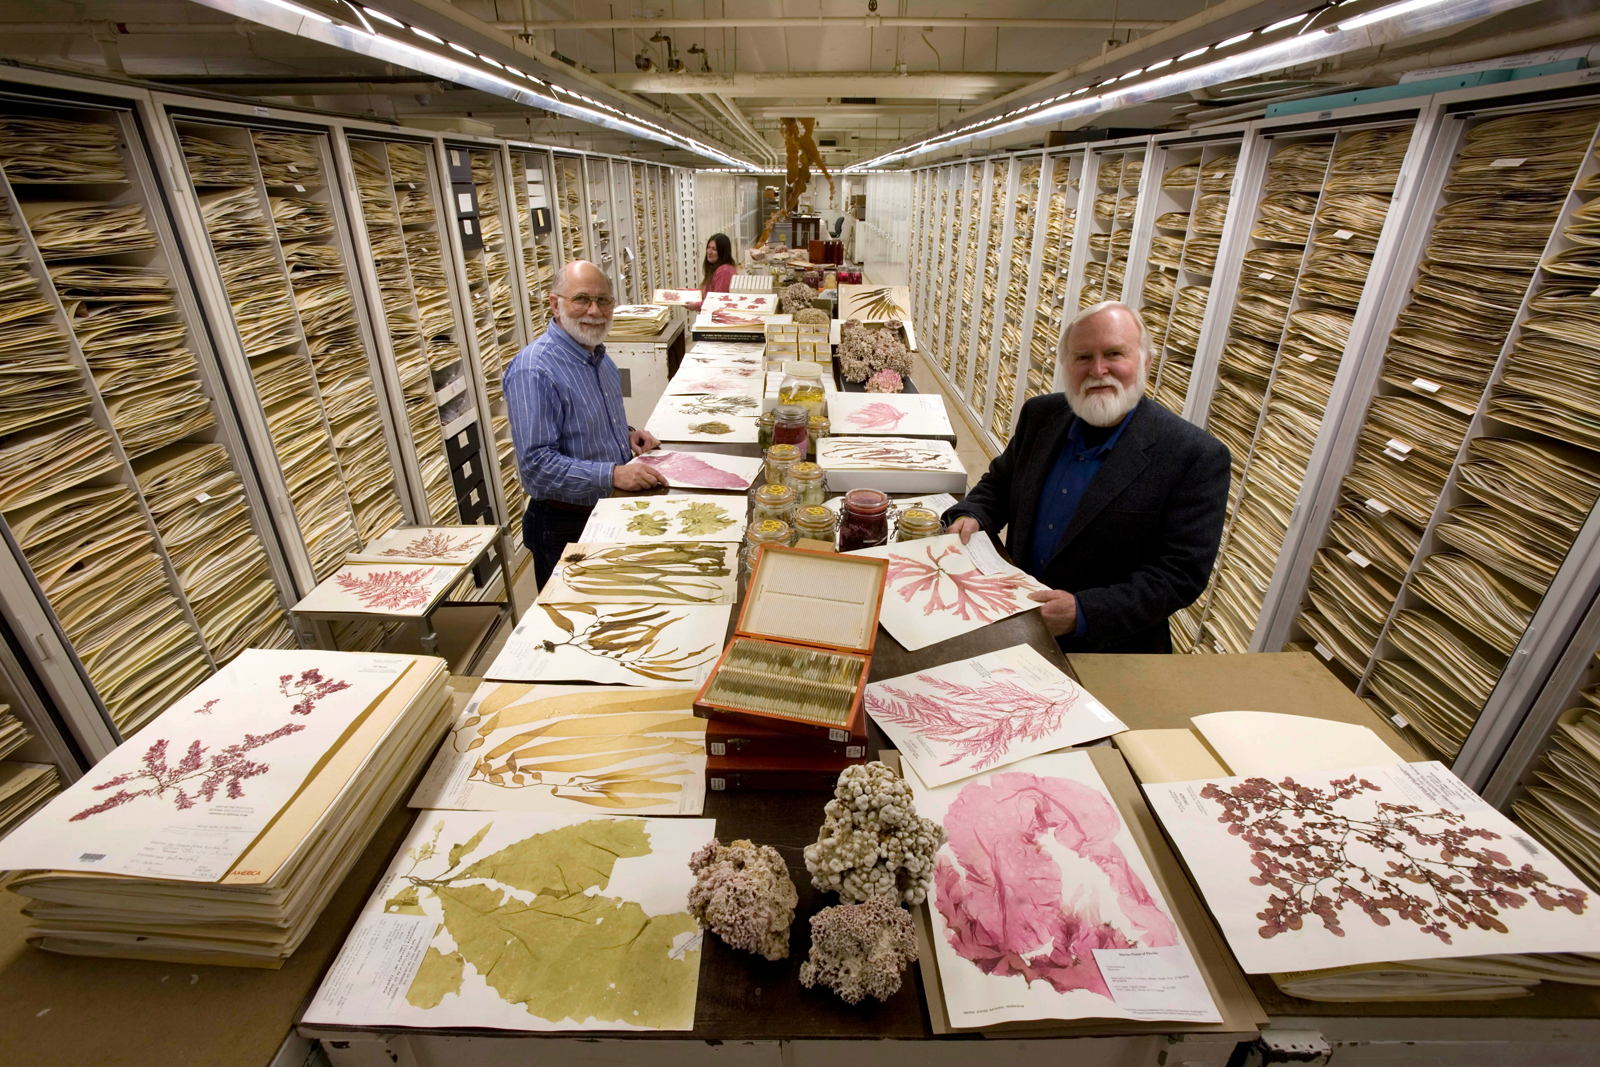 The Botany Department Herbarium at the Smithsonian Institution's National Museum of Natural History, displaying algae specimens, including coraline algae, wet specimens and the usual herbarium sheets. Featured researchers: Dr. James Norris (right, front), his research assistant Bob Sims (left, front), and associate researcher, Katie Norris (left, back).